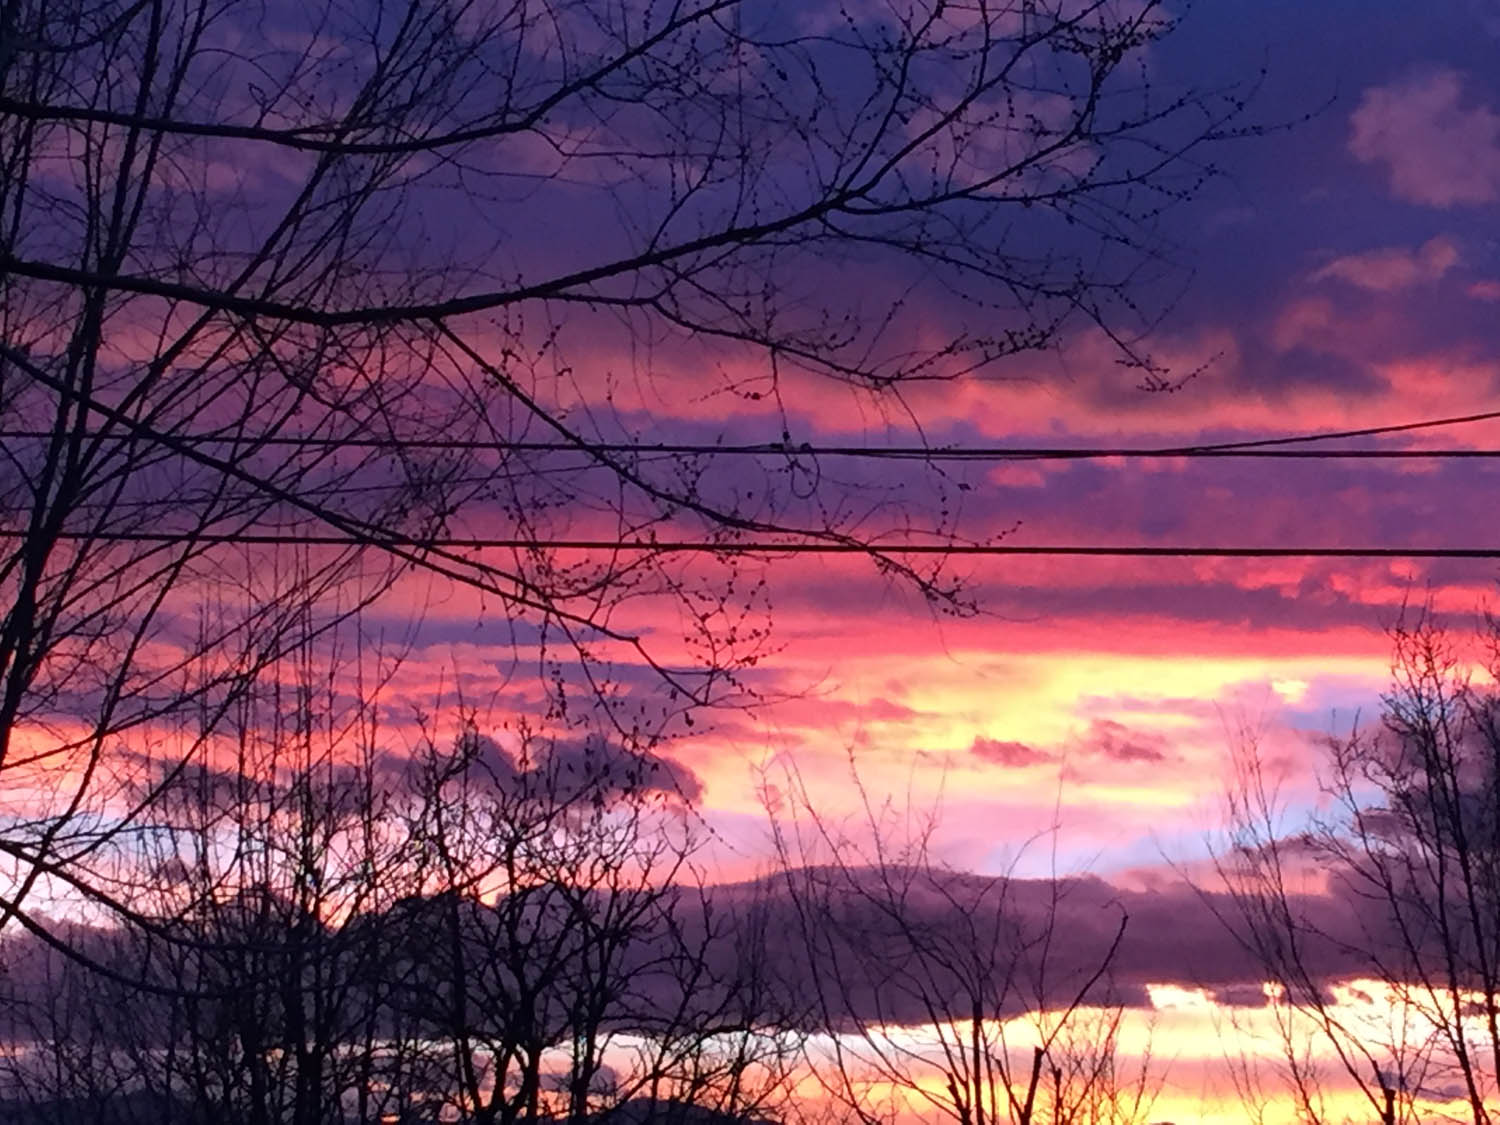 Sunset from Ashley's back yard in Littleton, Co